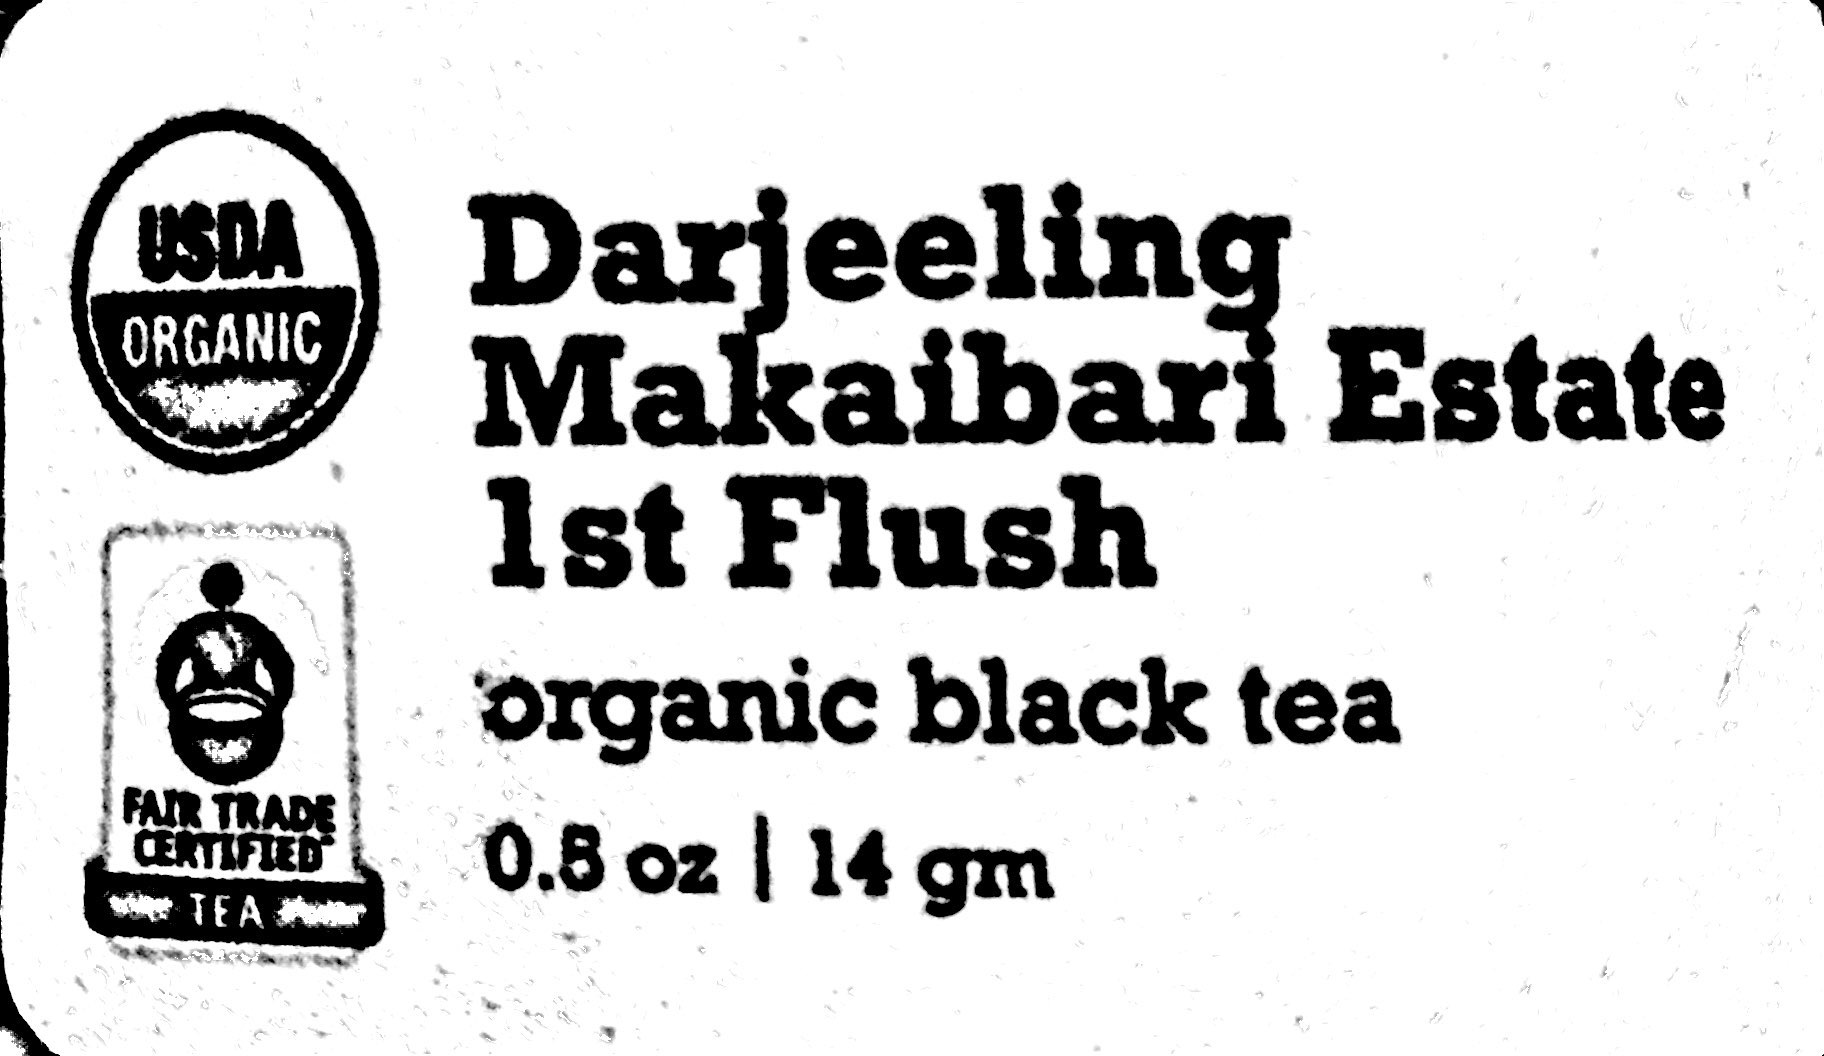 Arbor Teas Incursion January 2016: Darjeeling Makaibari Estate 1st Flush by Jocilyn Mors is licensed under a Creative Commons Attribution-ShareAlike 4.0 International License.